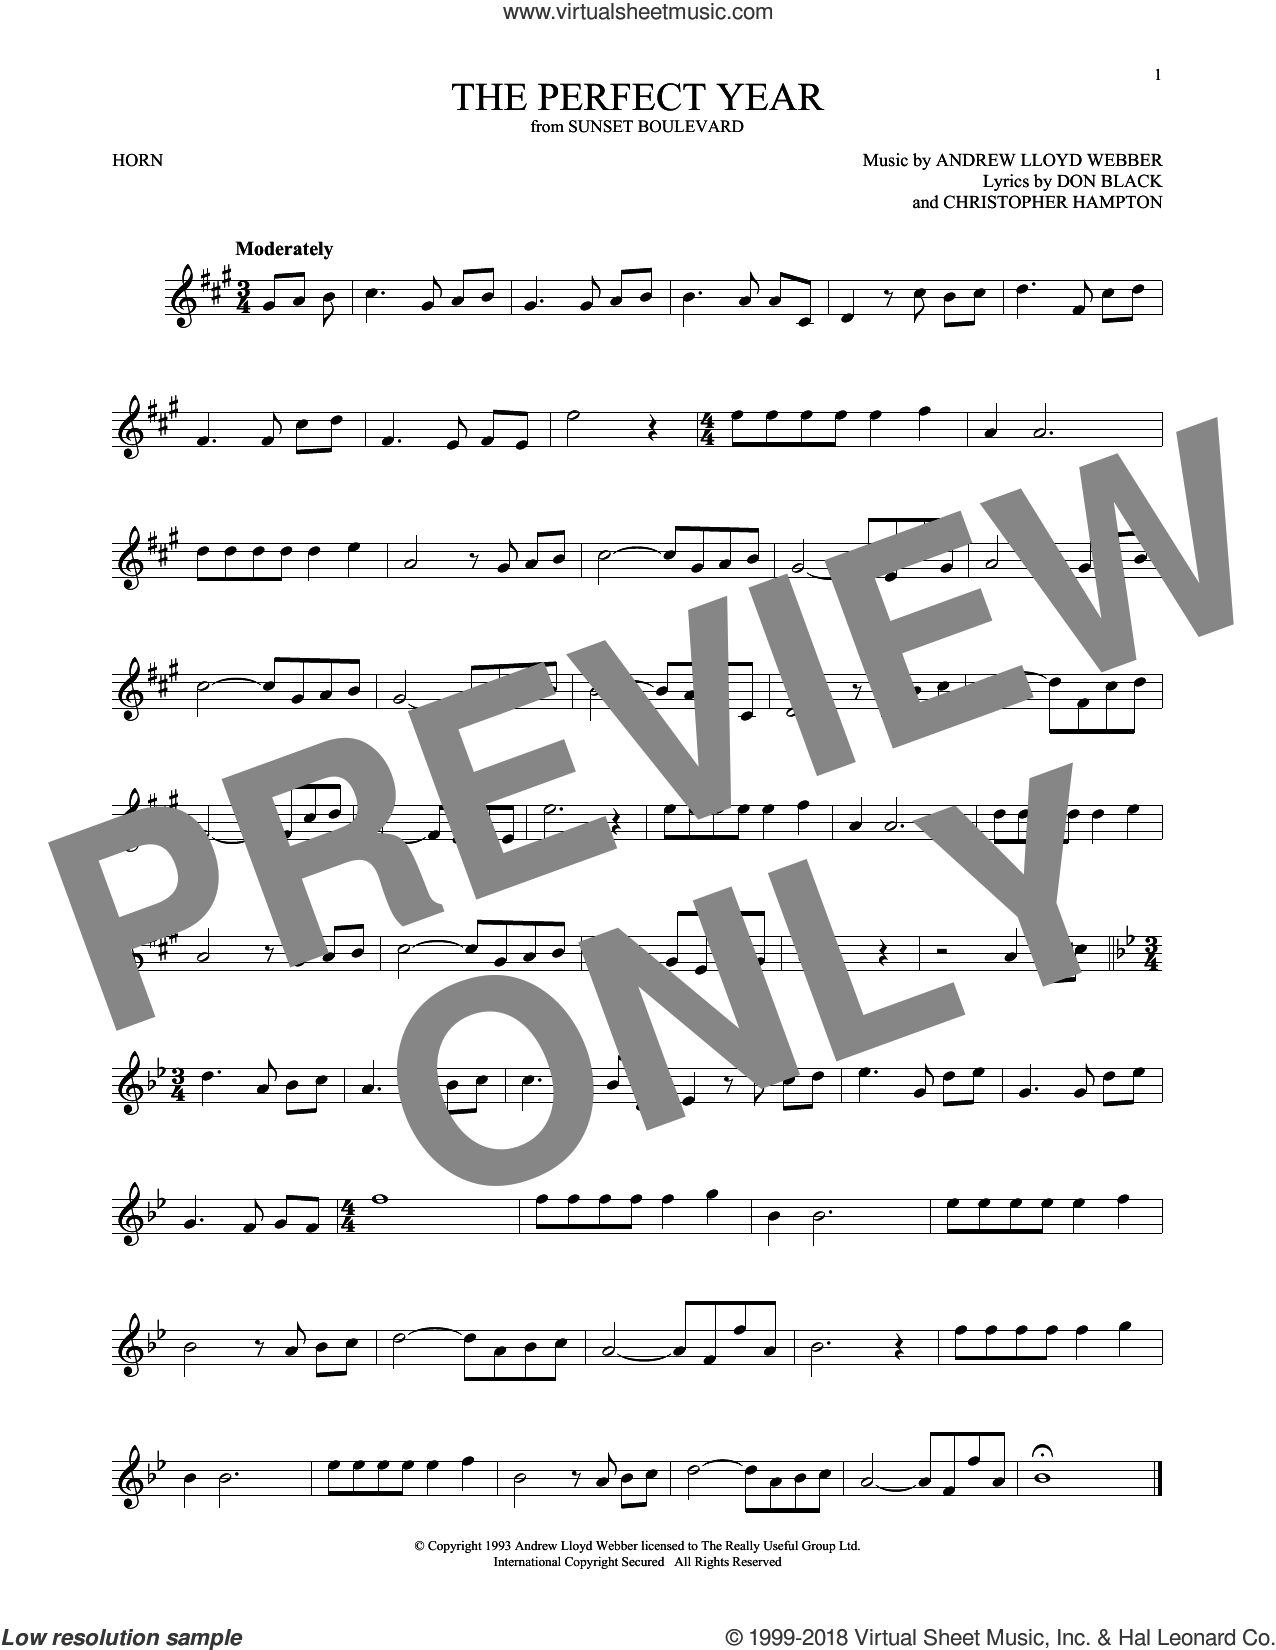 The Perfect Year (from Sunset Boulevard) sheet music for horn solo by Andrew Lloyd Webber, Christopher Hampton and Don Black, intermediate skill level